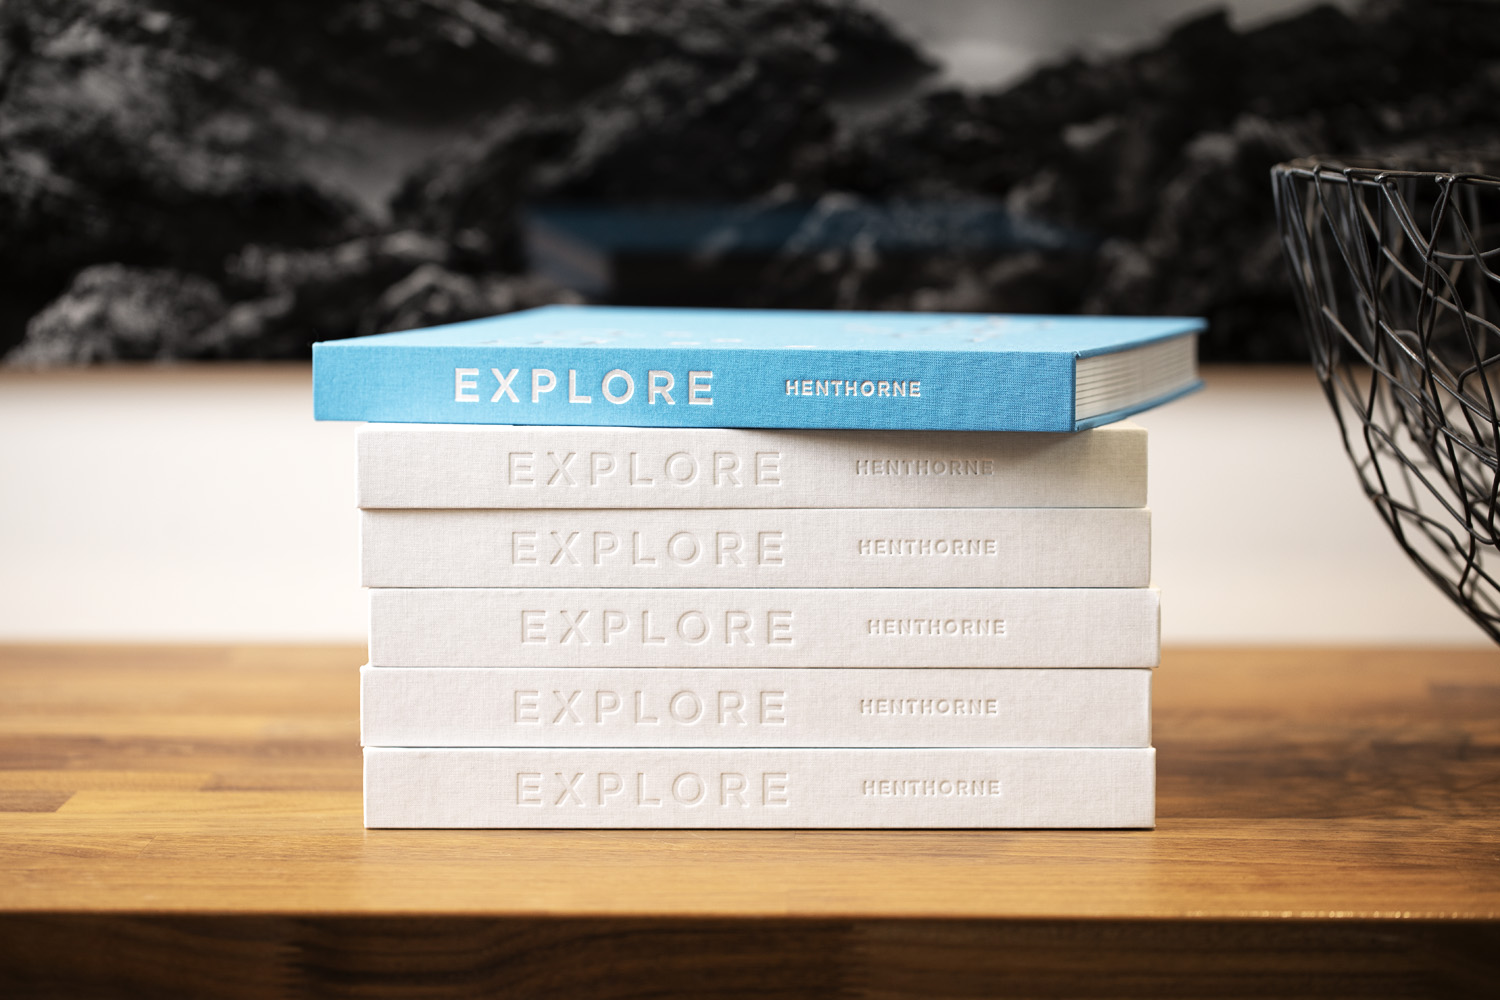 Explore the book cover and limited edition version